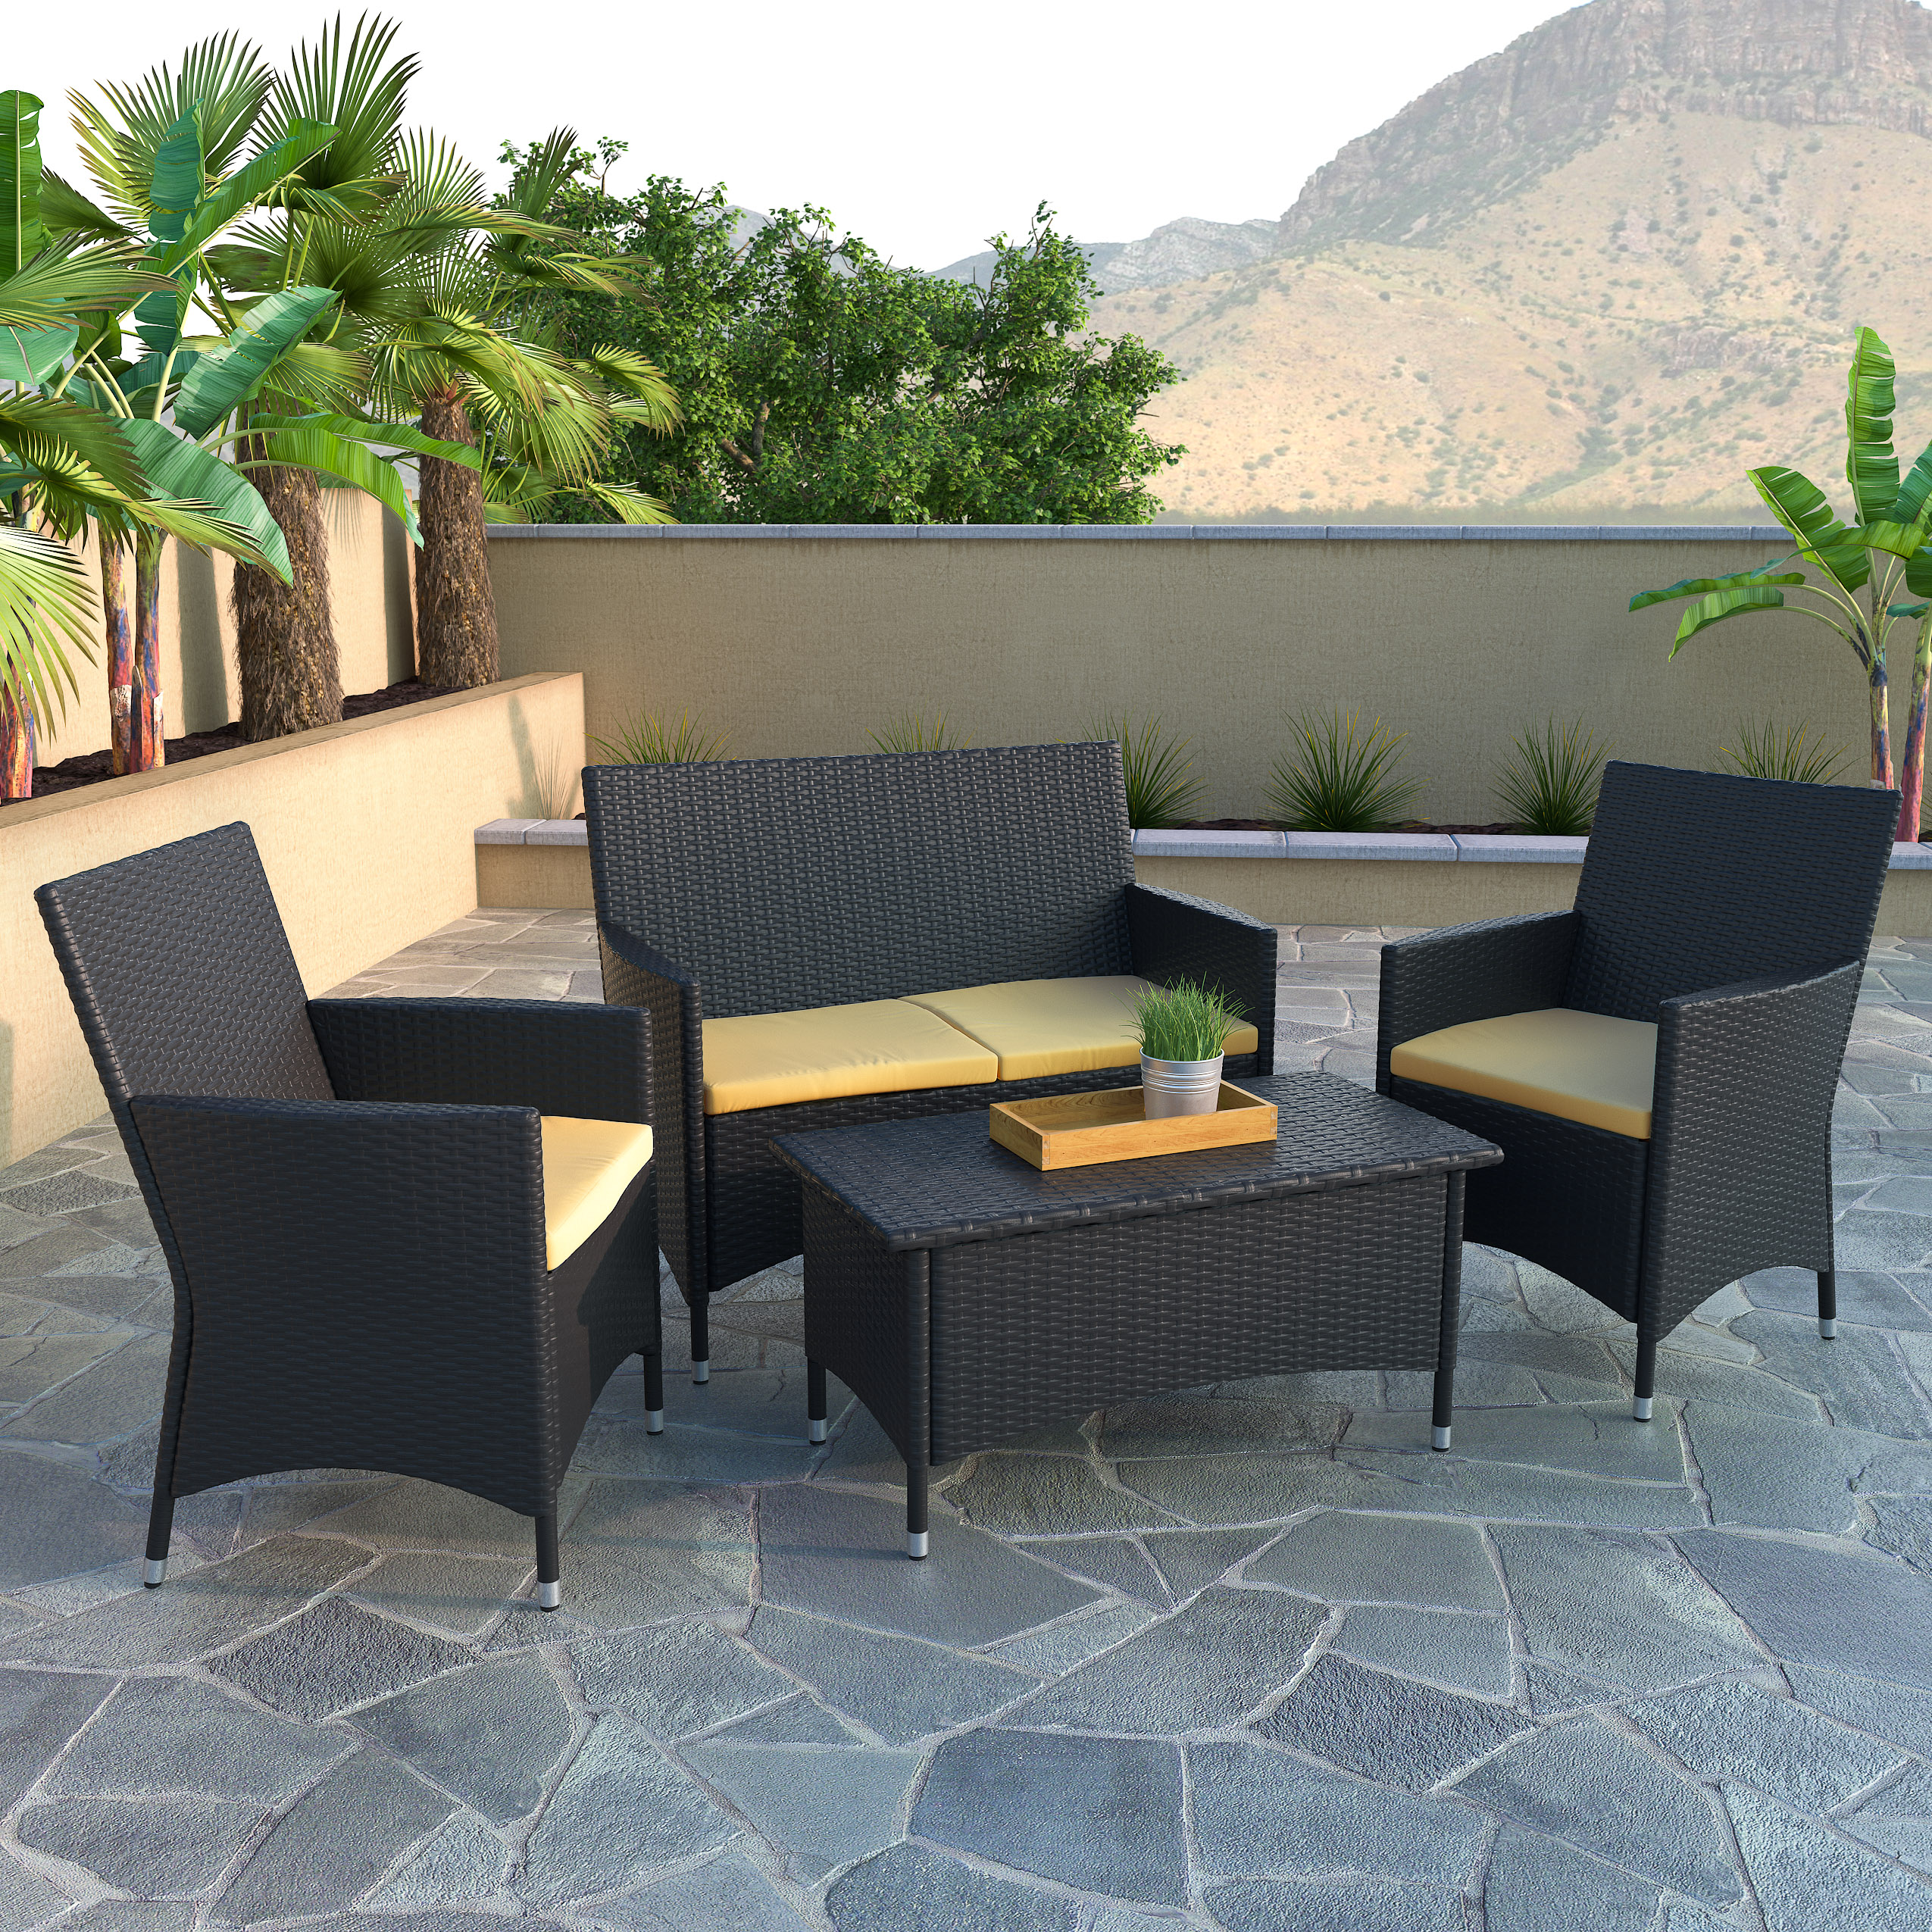 Beau CorLiving Cascade 4pc Black Rope Weave Patio Set, With Sunset Yellow  Cushions